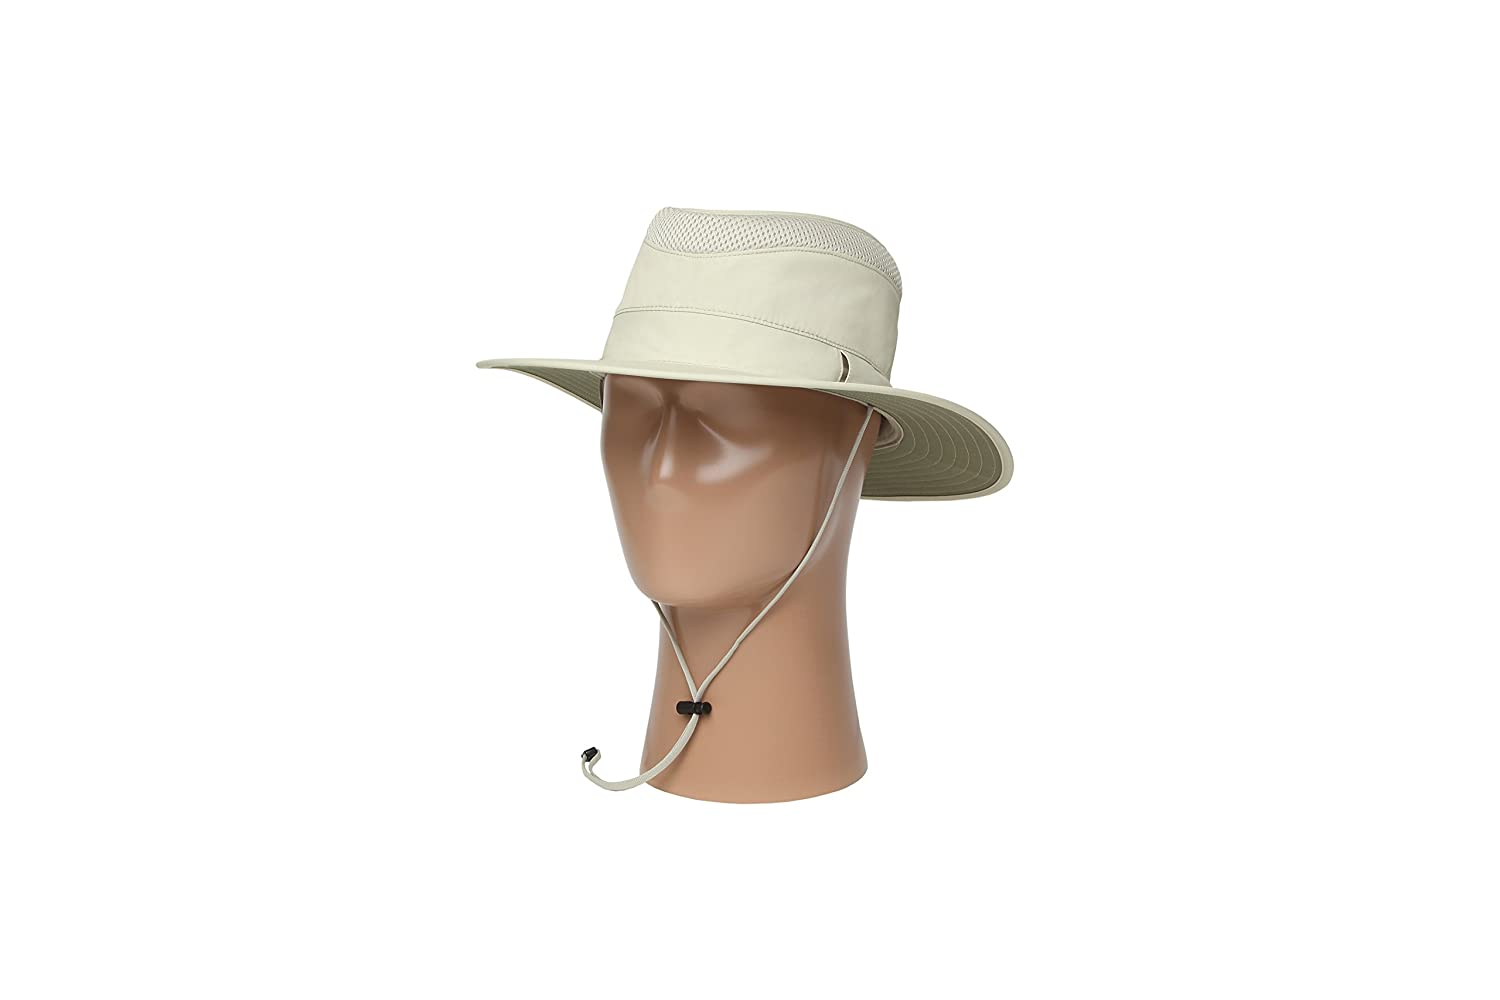 c822a836db9 Amazon.com   Sunday Afternoons Men s Charter Hat   Sun Hats   Sports    Outdoors